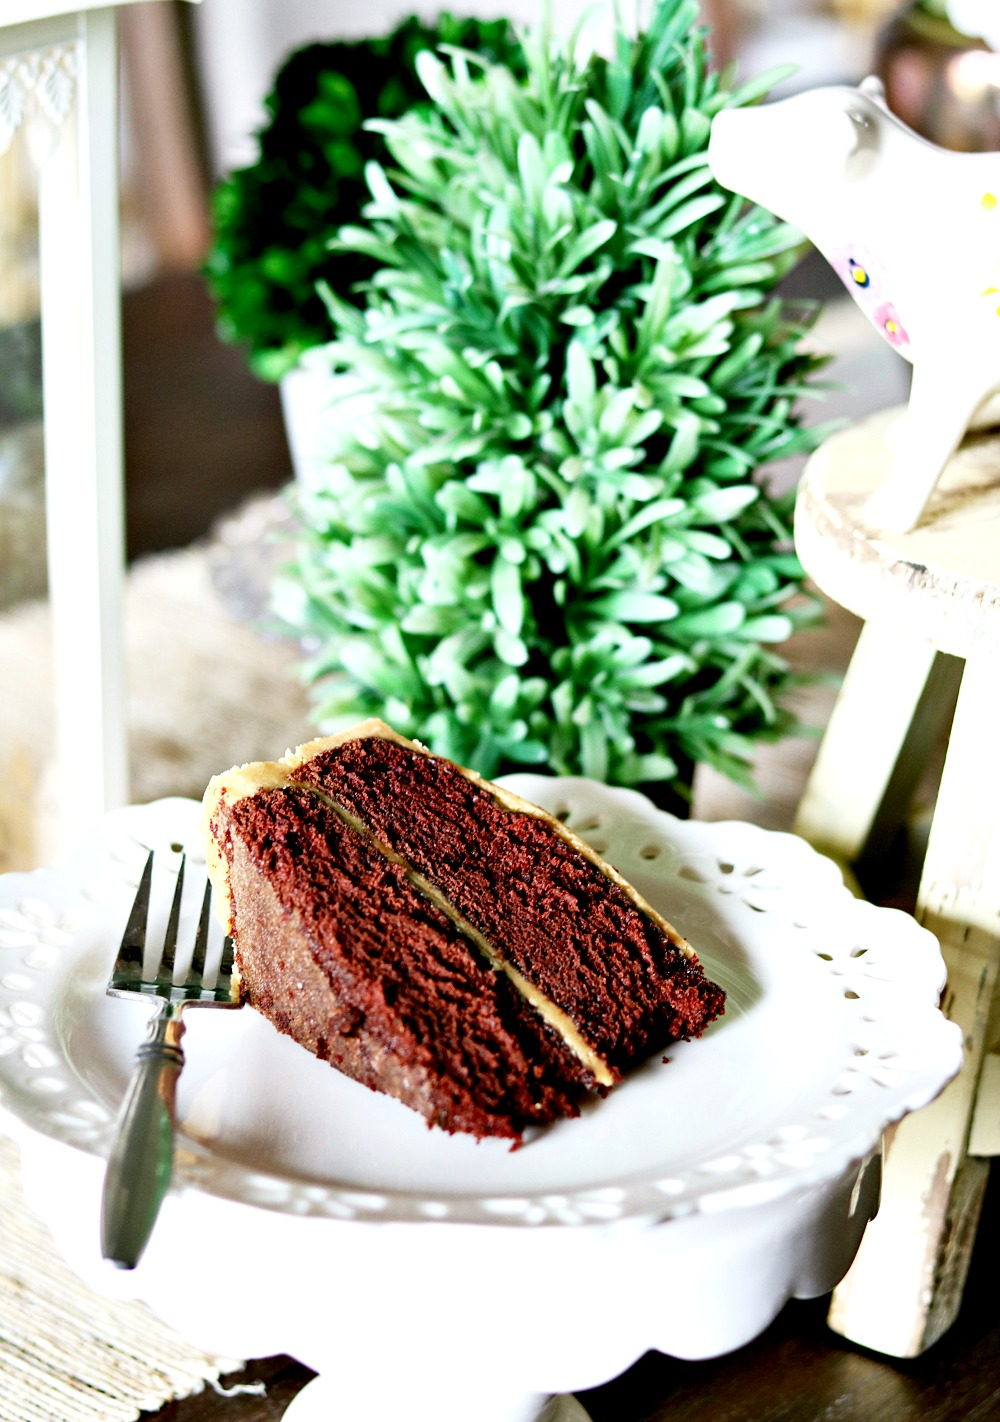 caramel-icing-frosting-baking-homemade-pretty-holiday-festive-delicious